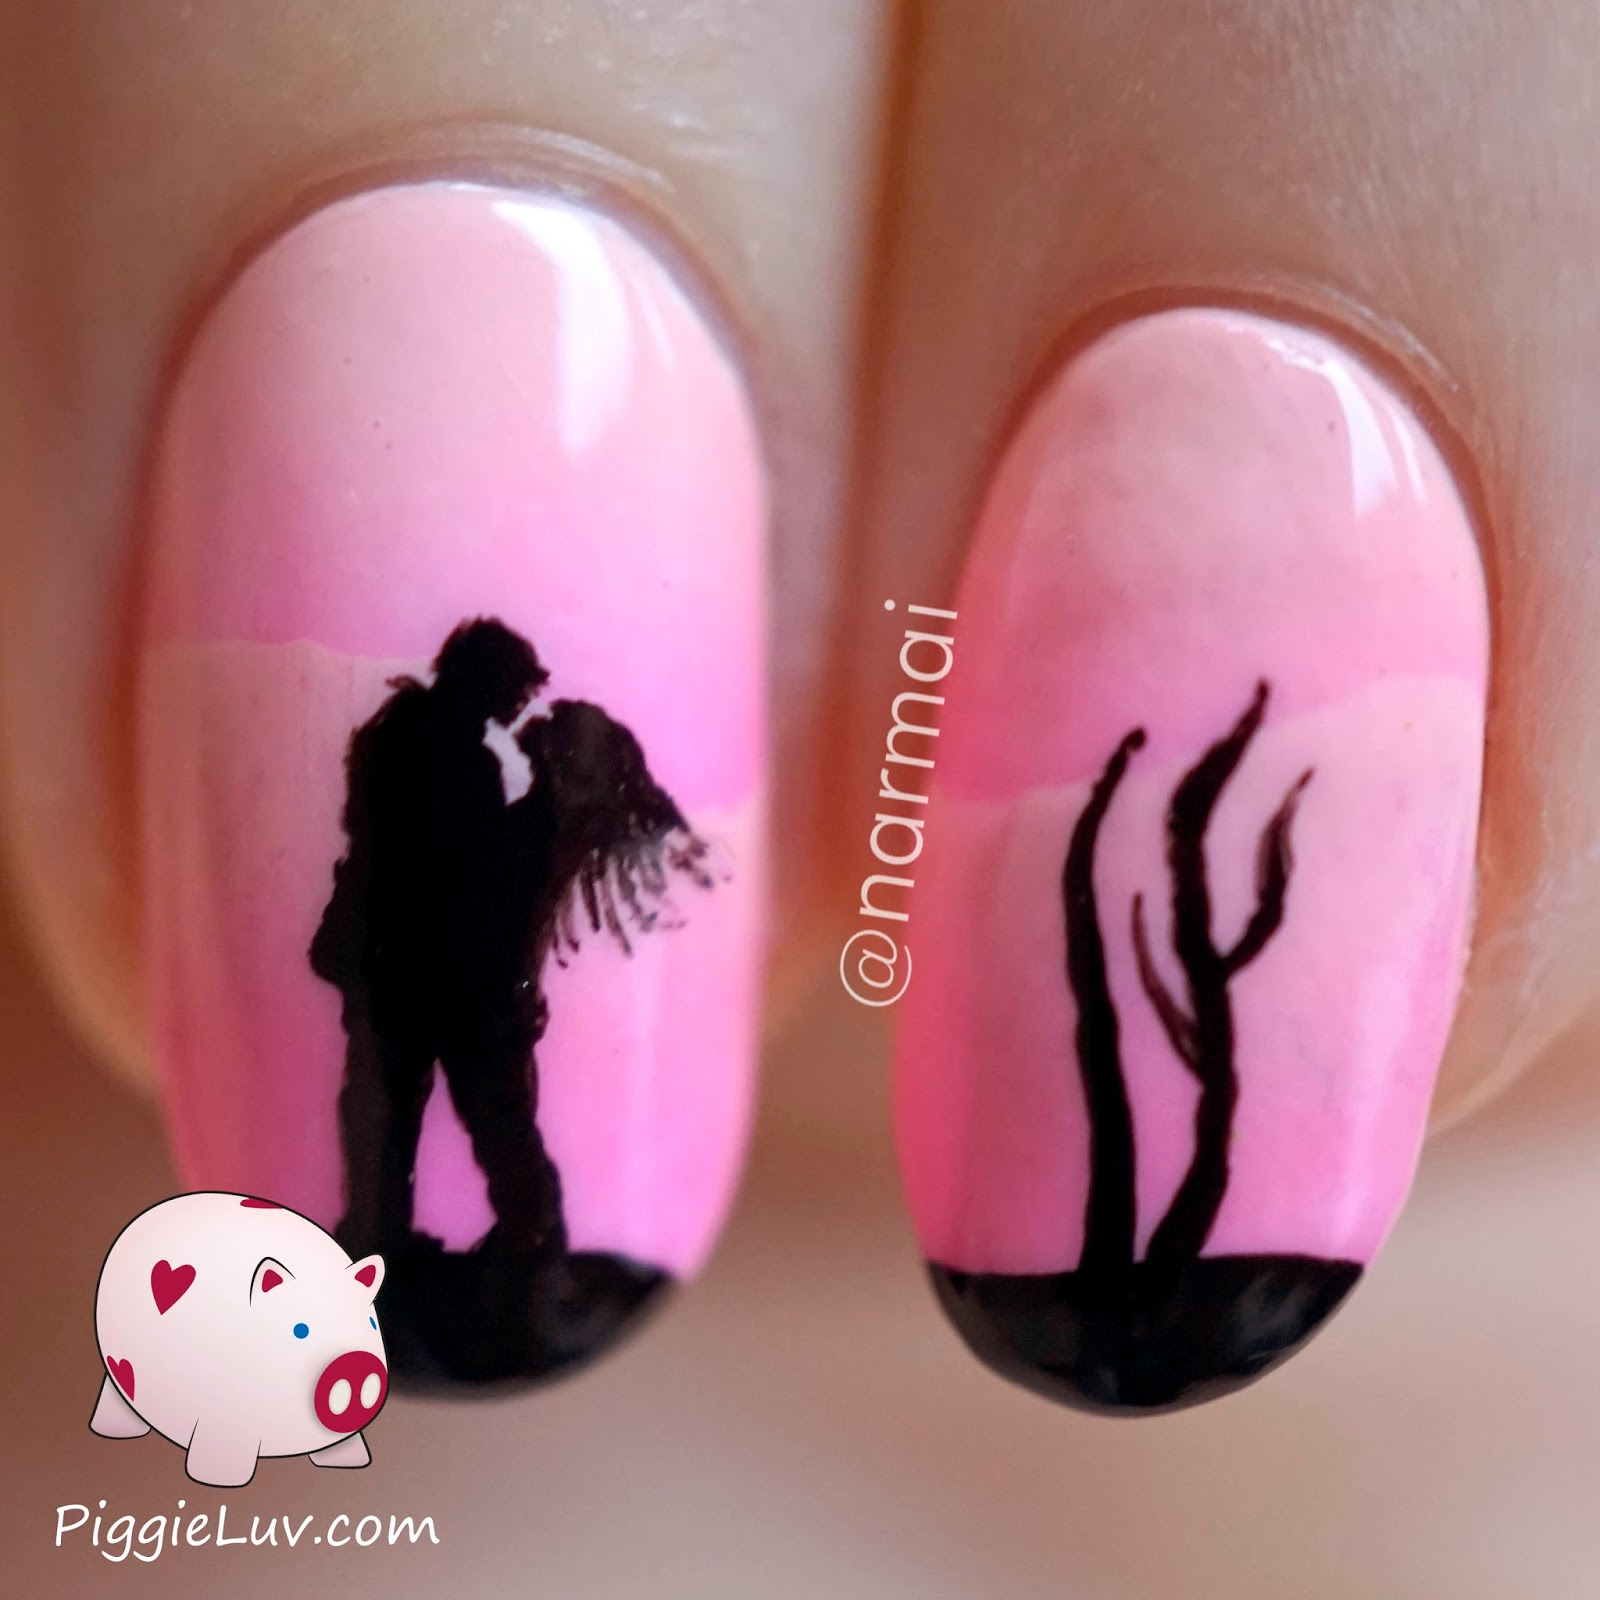 PiggieLuv: Pink scaled gradient with freehand silhouette nail art